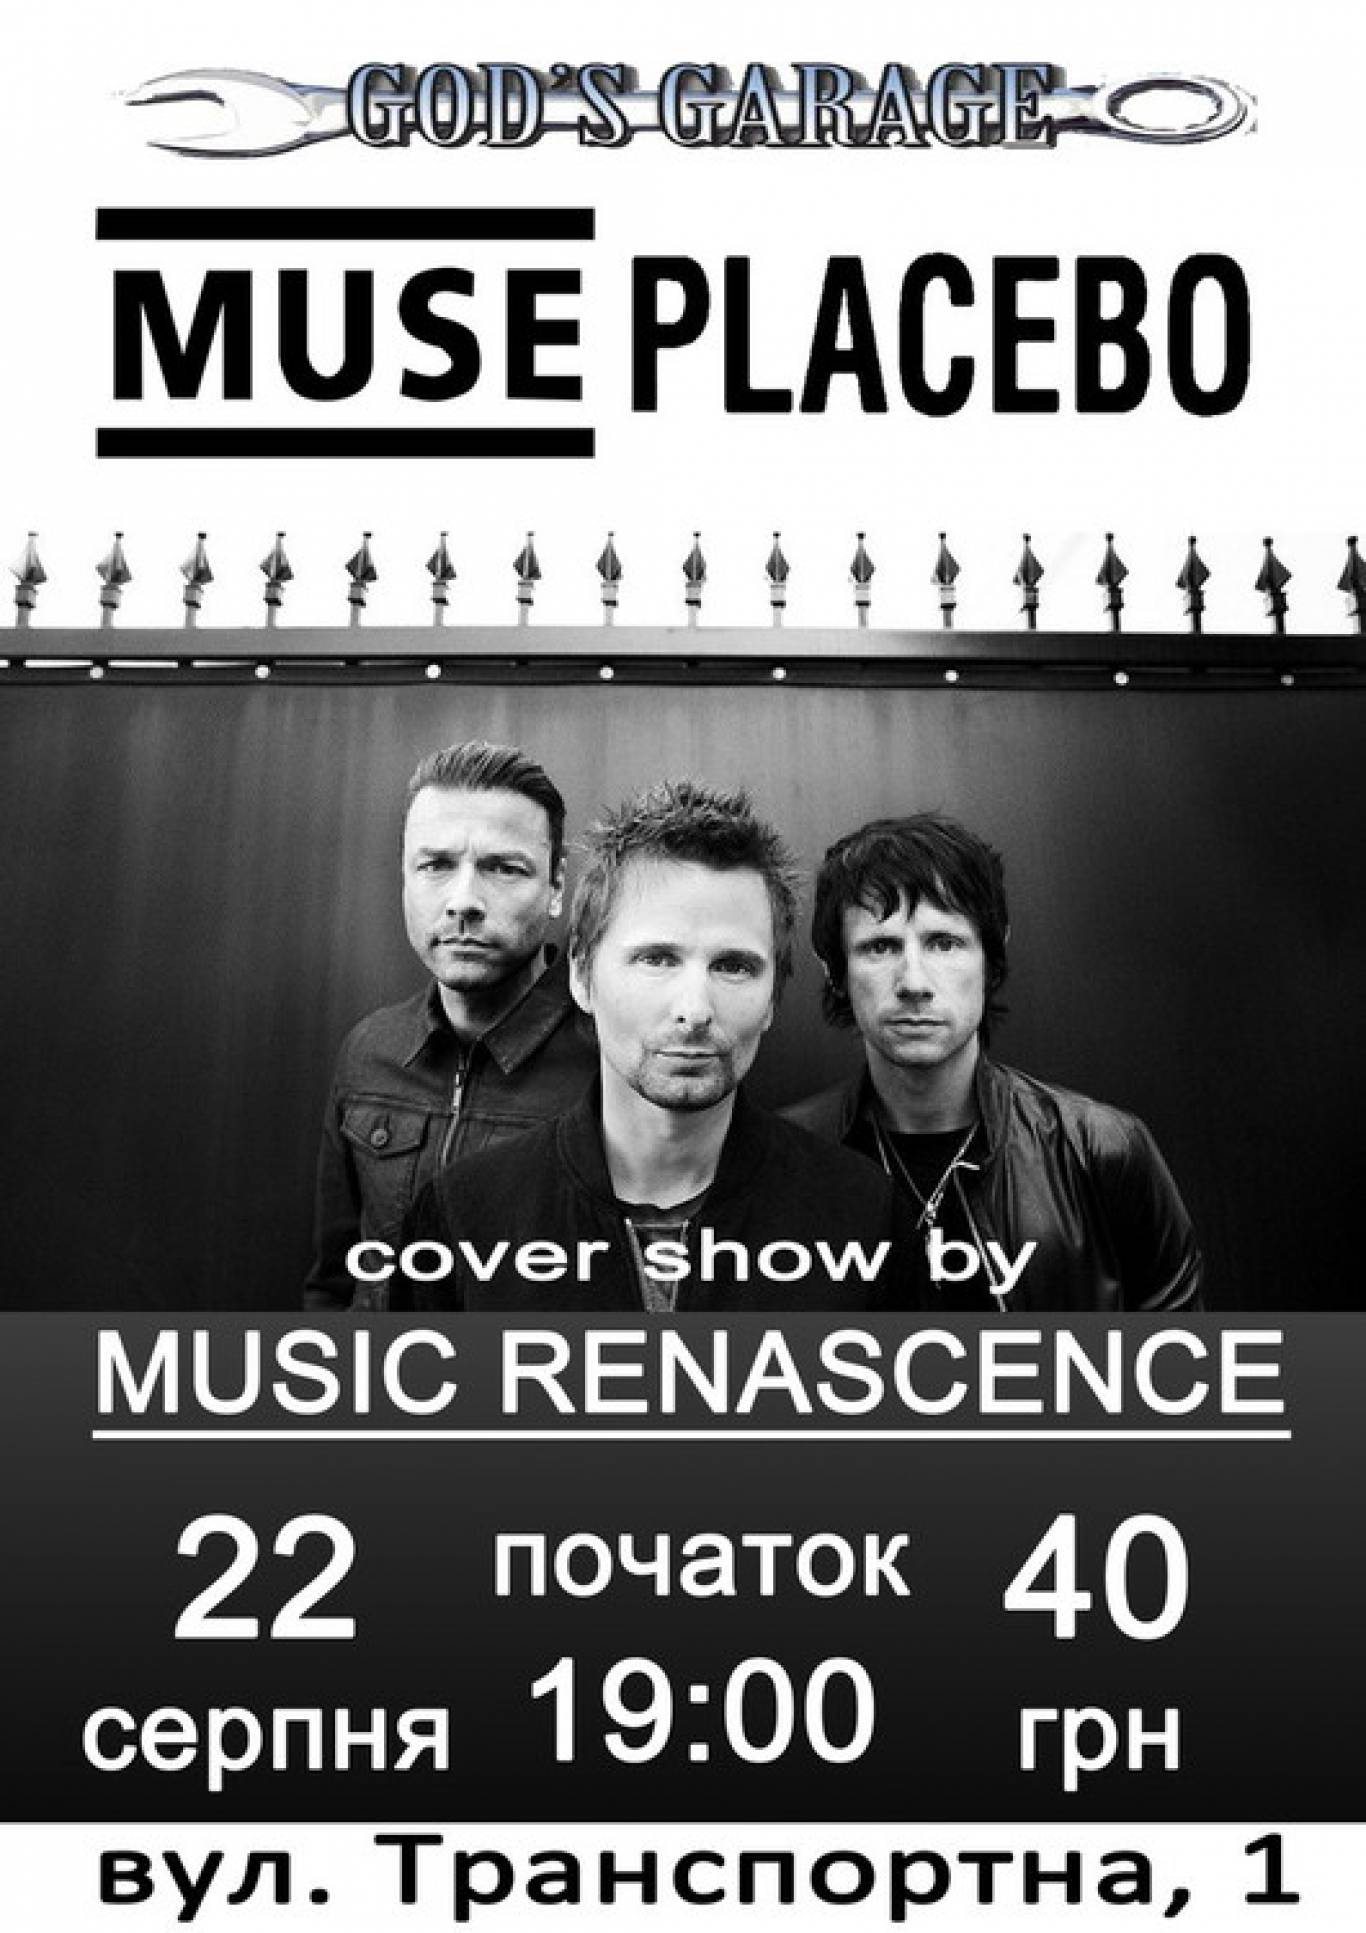 MUSE PLACEBO BY MUSIC RENASCENCE IN GOD'S GARAGE